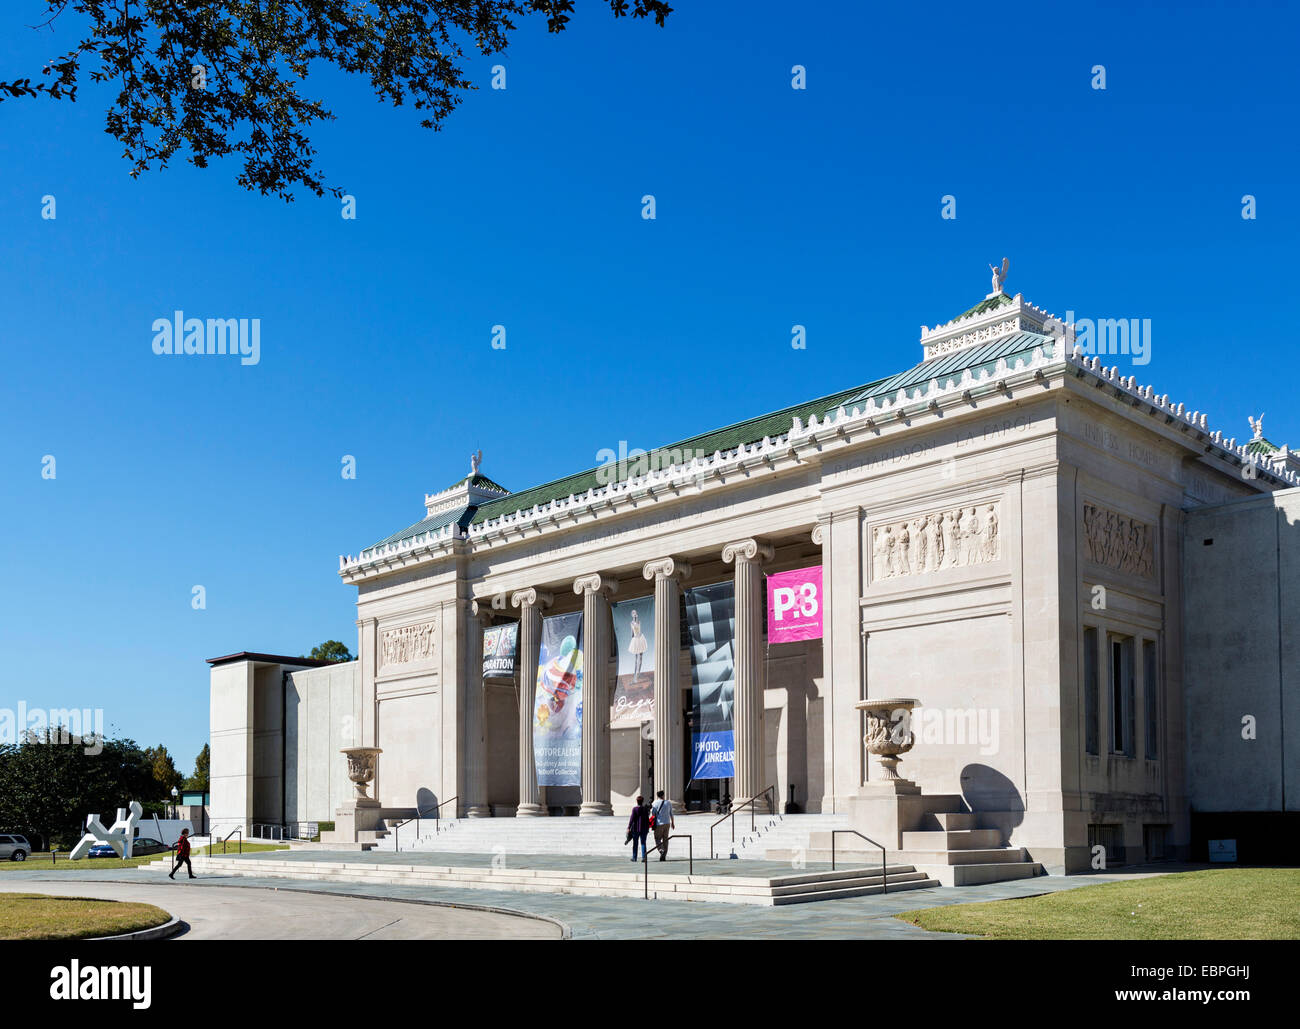 The New Orleans Museum of Art, New Orleans, Lousiana, USA - Stock Image